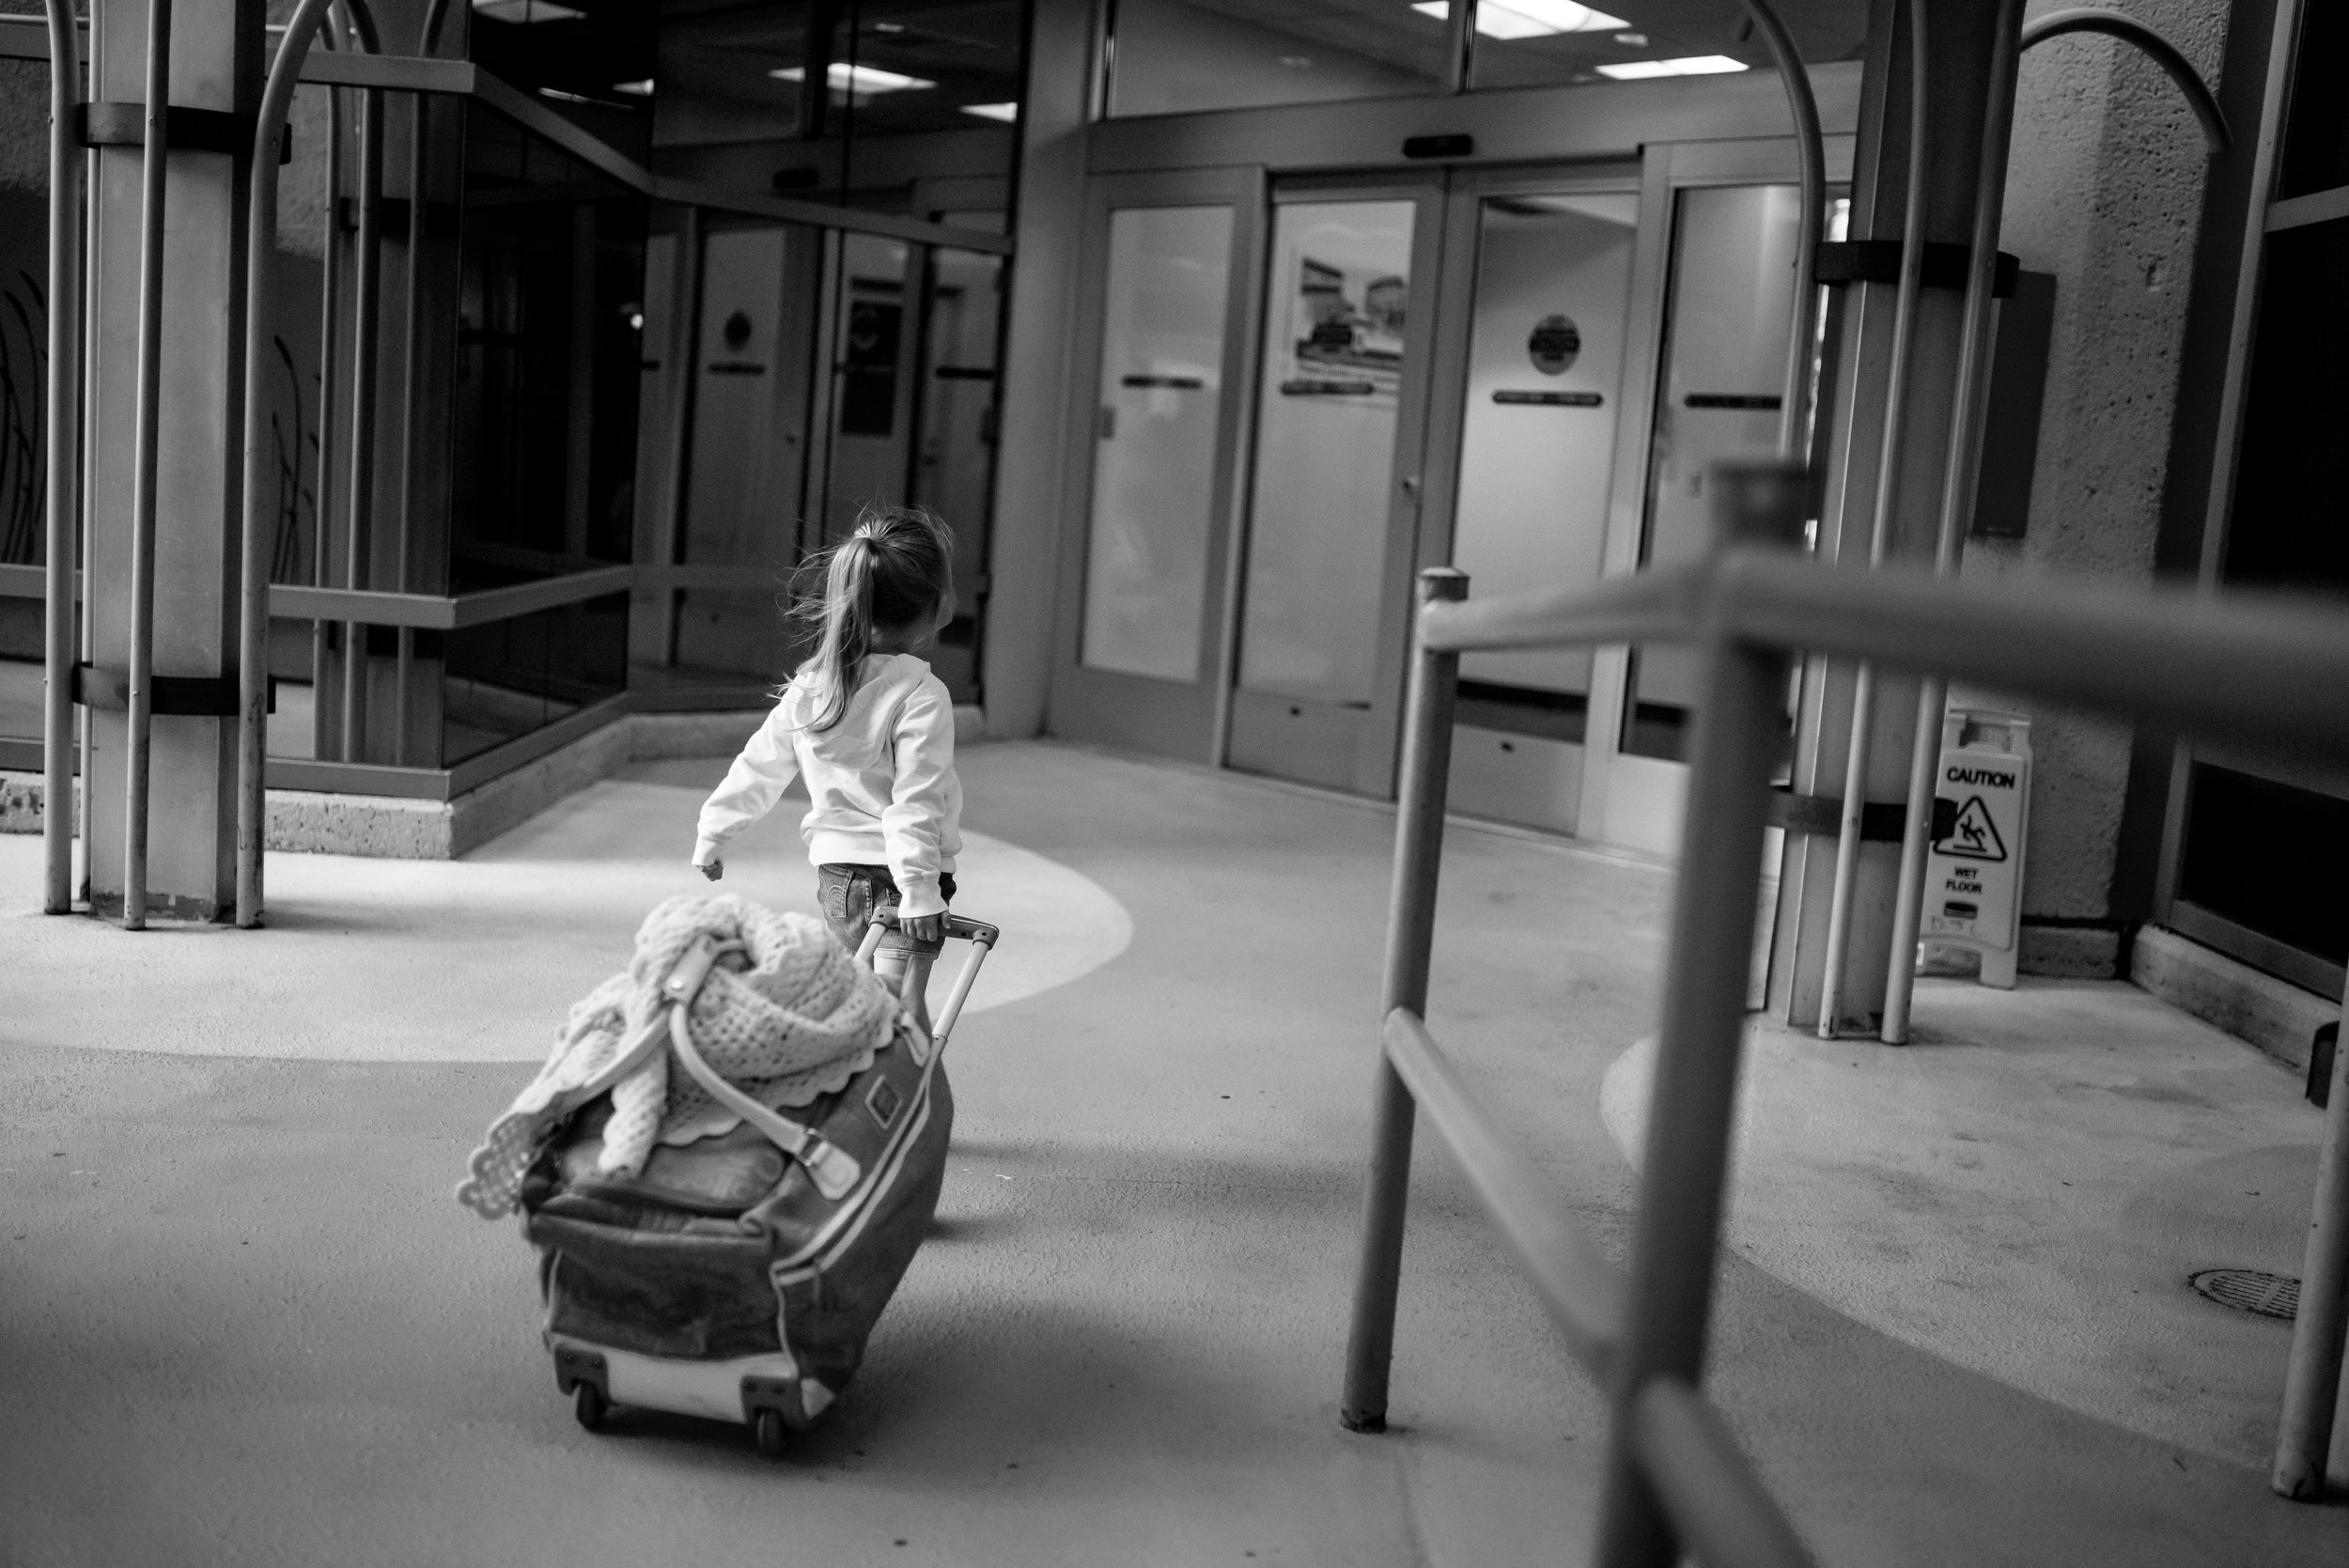 Girl with suitcase enters hospital for heart procedure